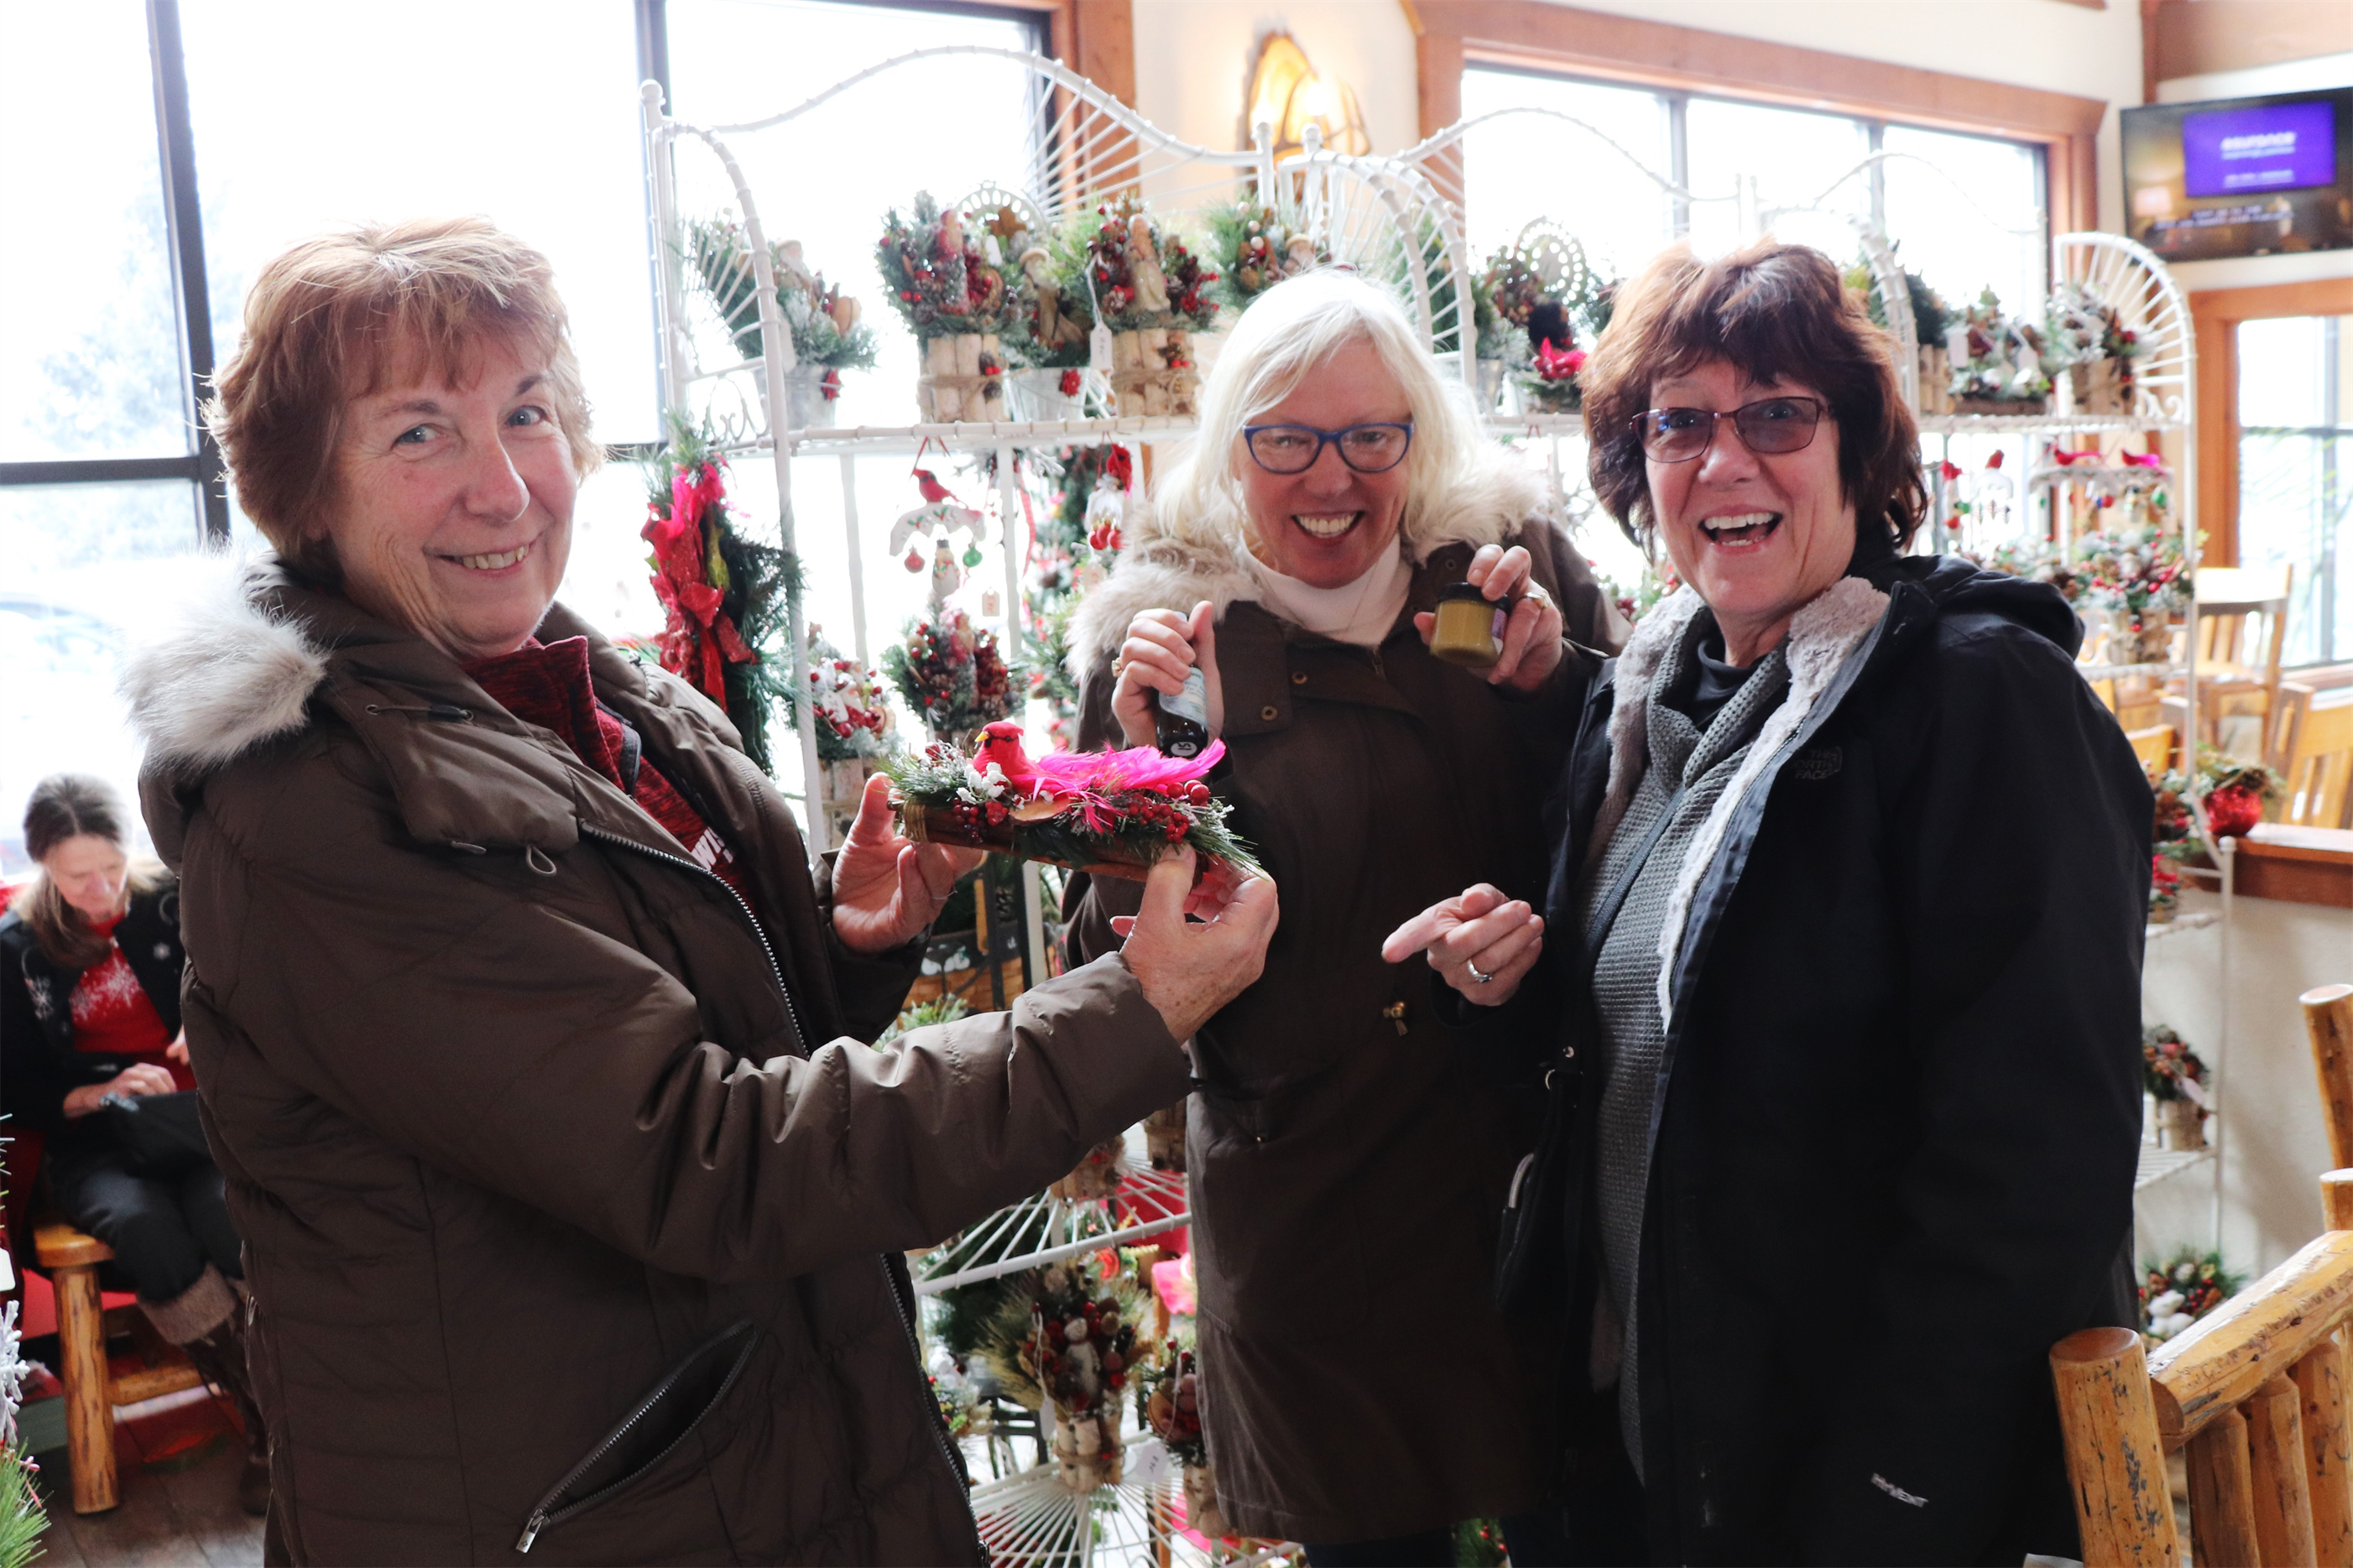 These ladies enjoy looking at the Christmas crafts at the annual Holiday Market in Minocqua. Kim Johnson photo